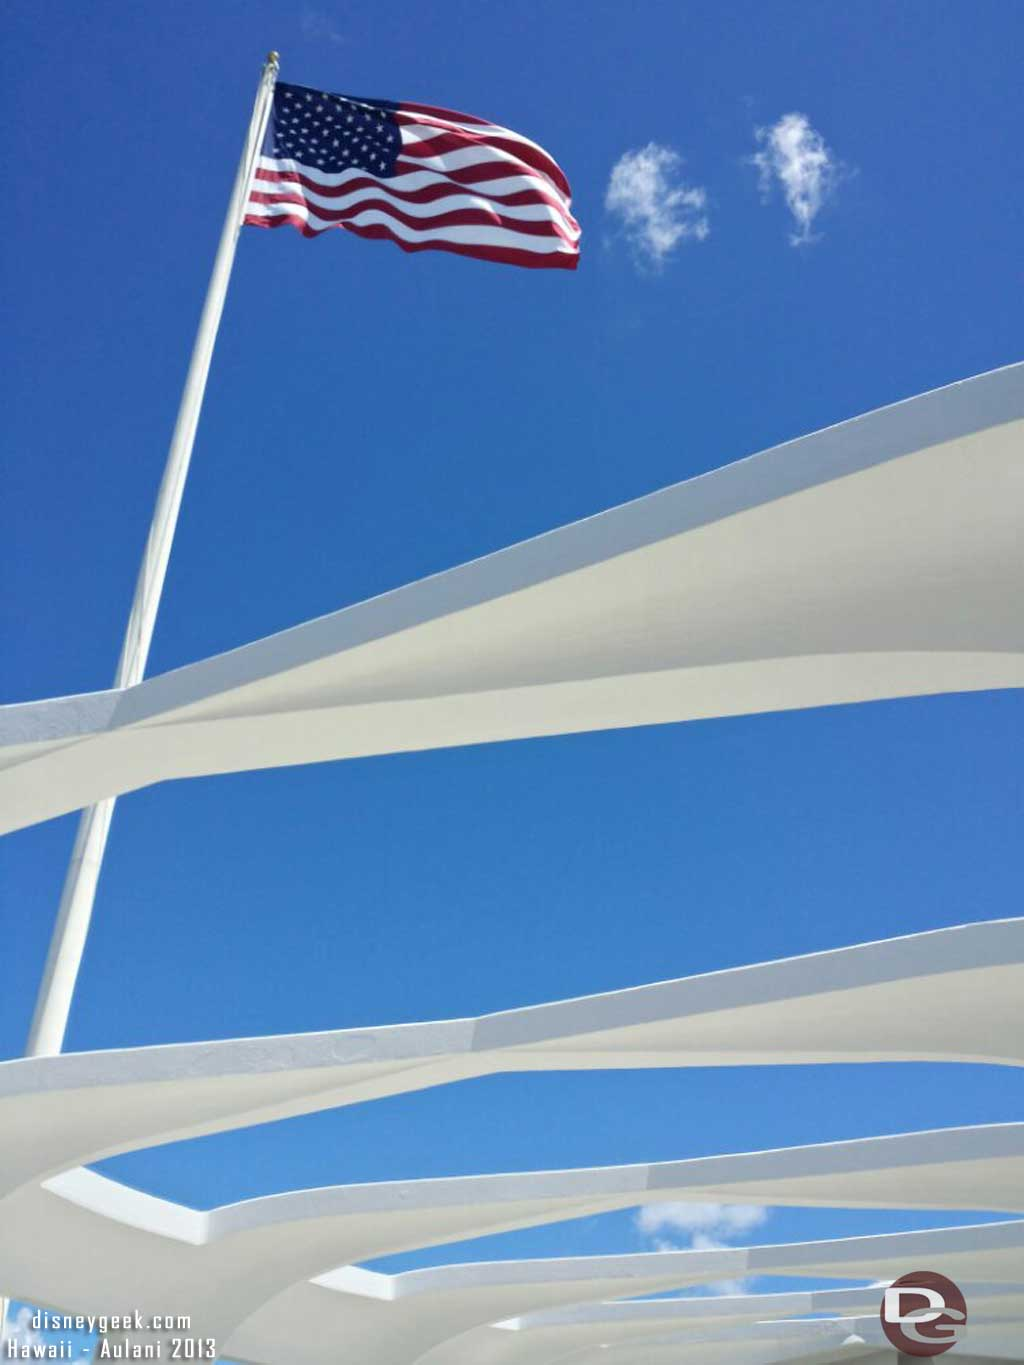 The US Flag flying over the Arizona Memorial #Hawaii